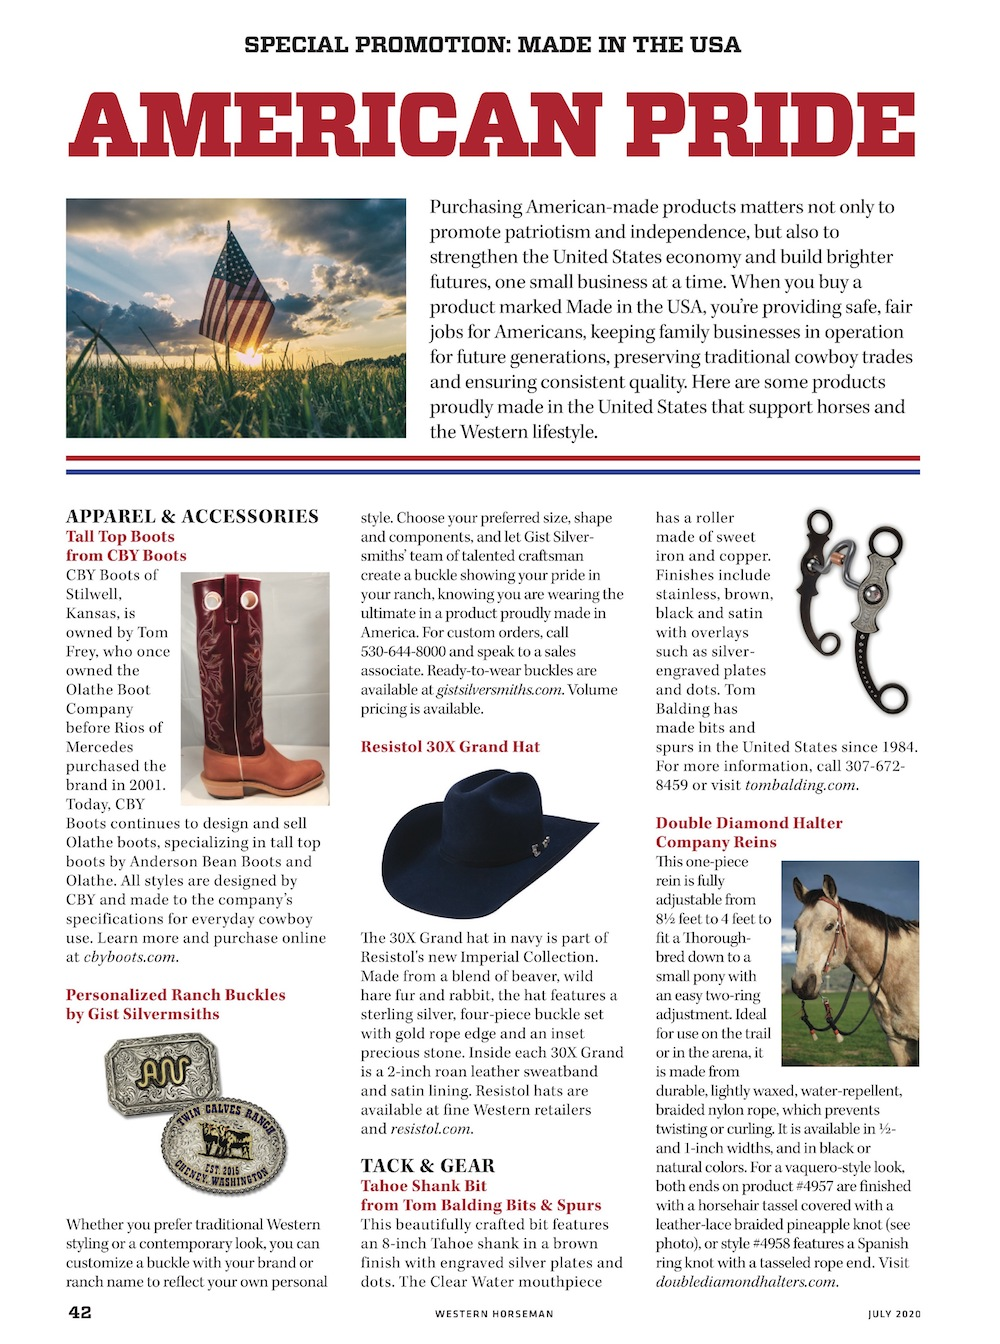 made in the usa special promotion section from western horseman magazine page 1